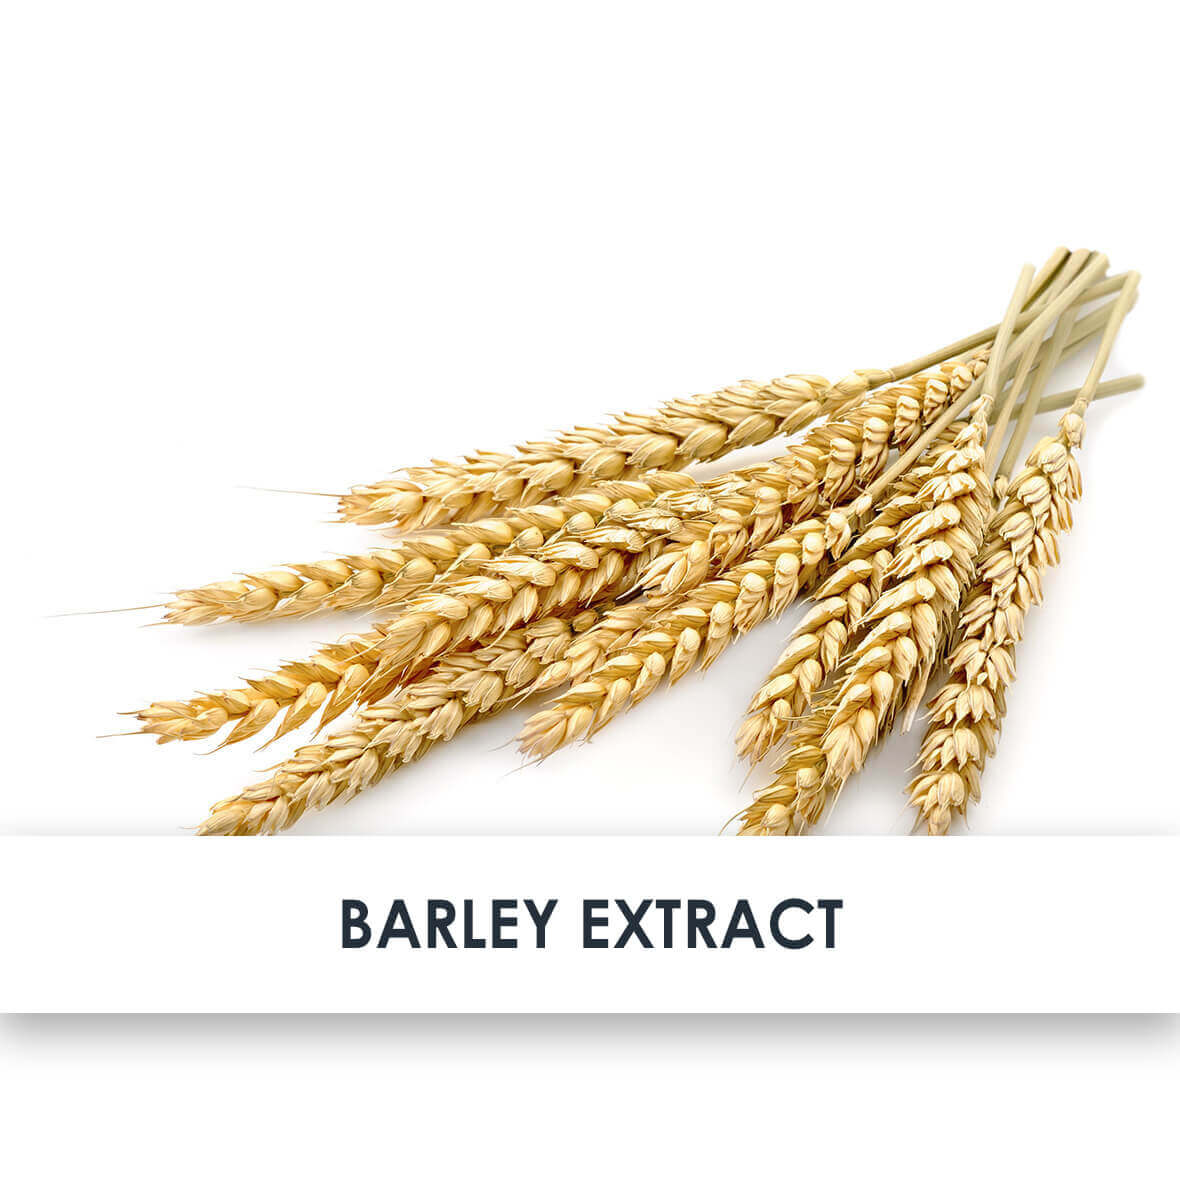 Active Ingredient Barley Extract